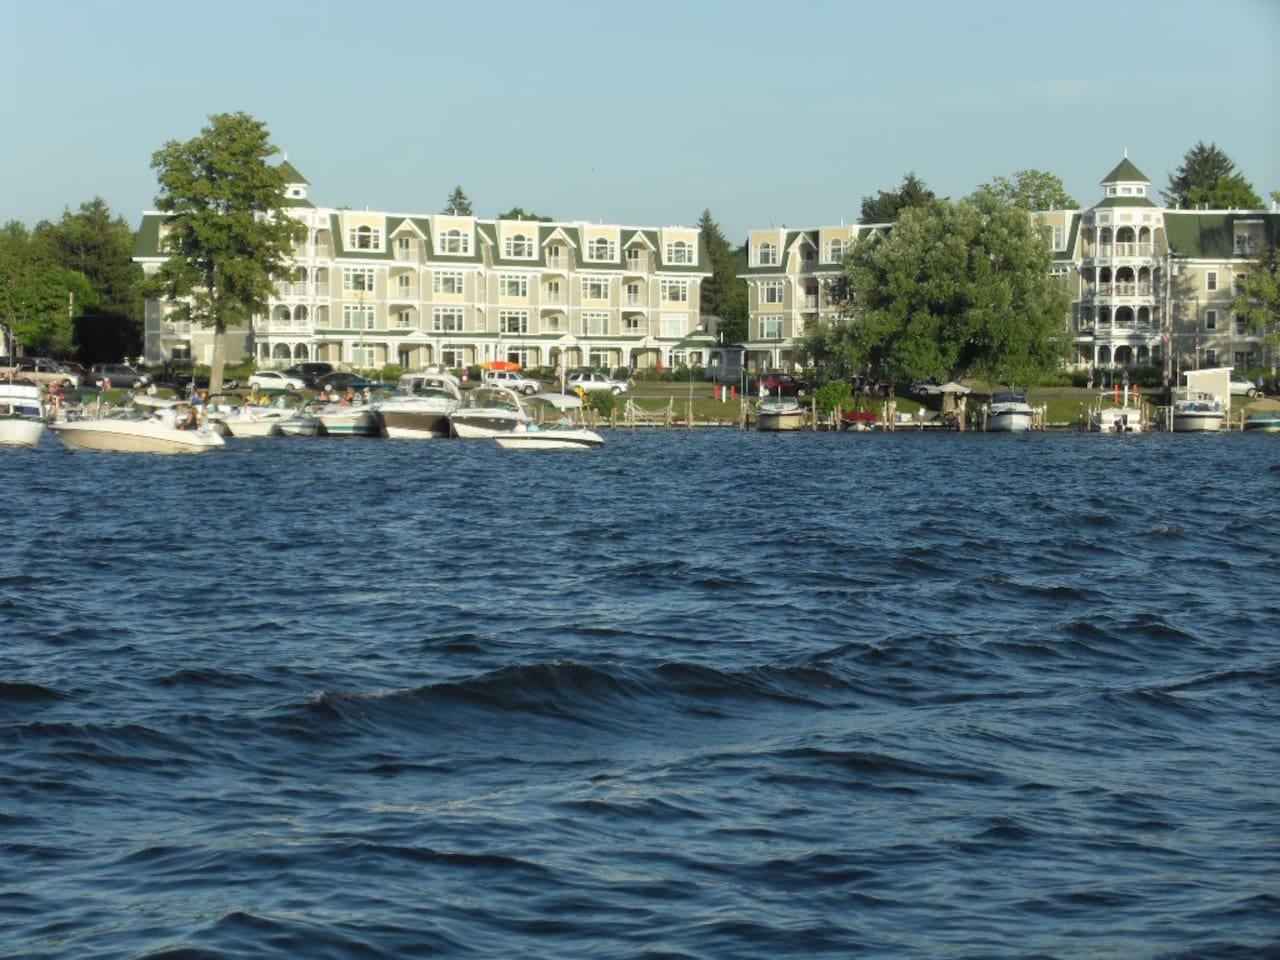 VIEW of Bemus Point Condos from the lake 5 minites from the house